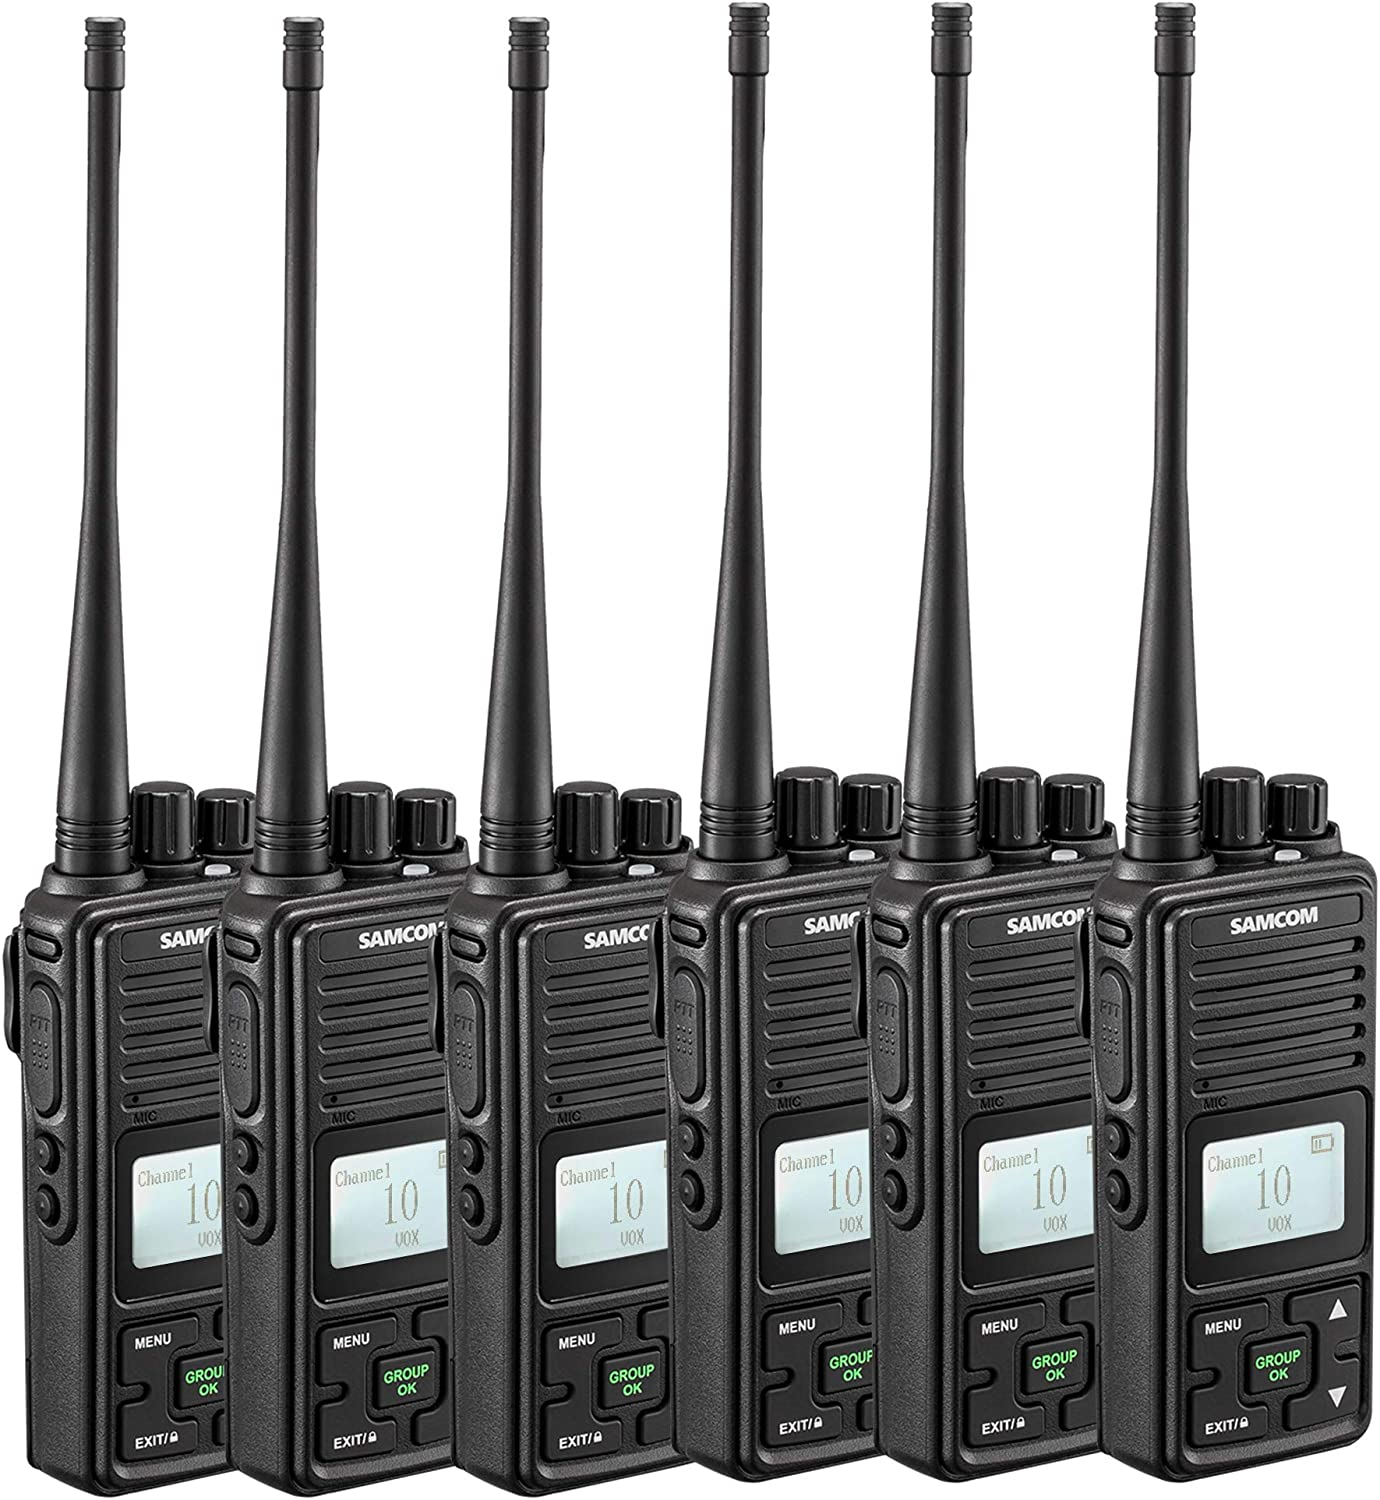 SAMCOM Two Way Radio FPCN10A 2 Watts Programmable UHF Handheld Walkie Talkie Long Range 20 Channels Double PTT LCD Display Earpieces, 6 Packs